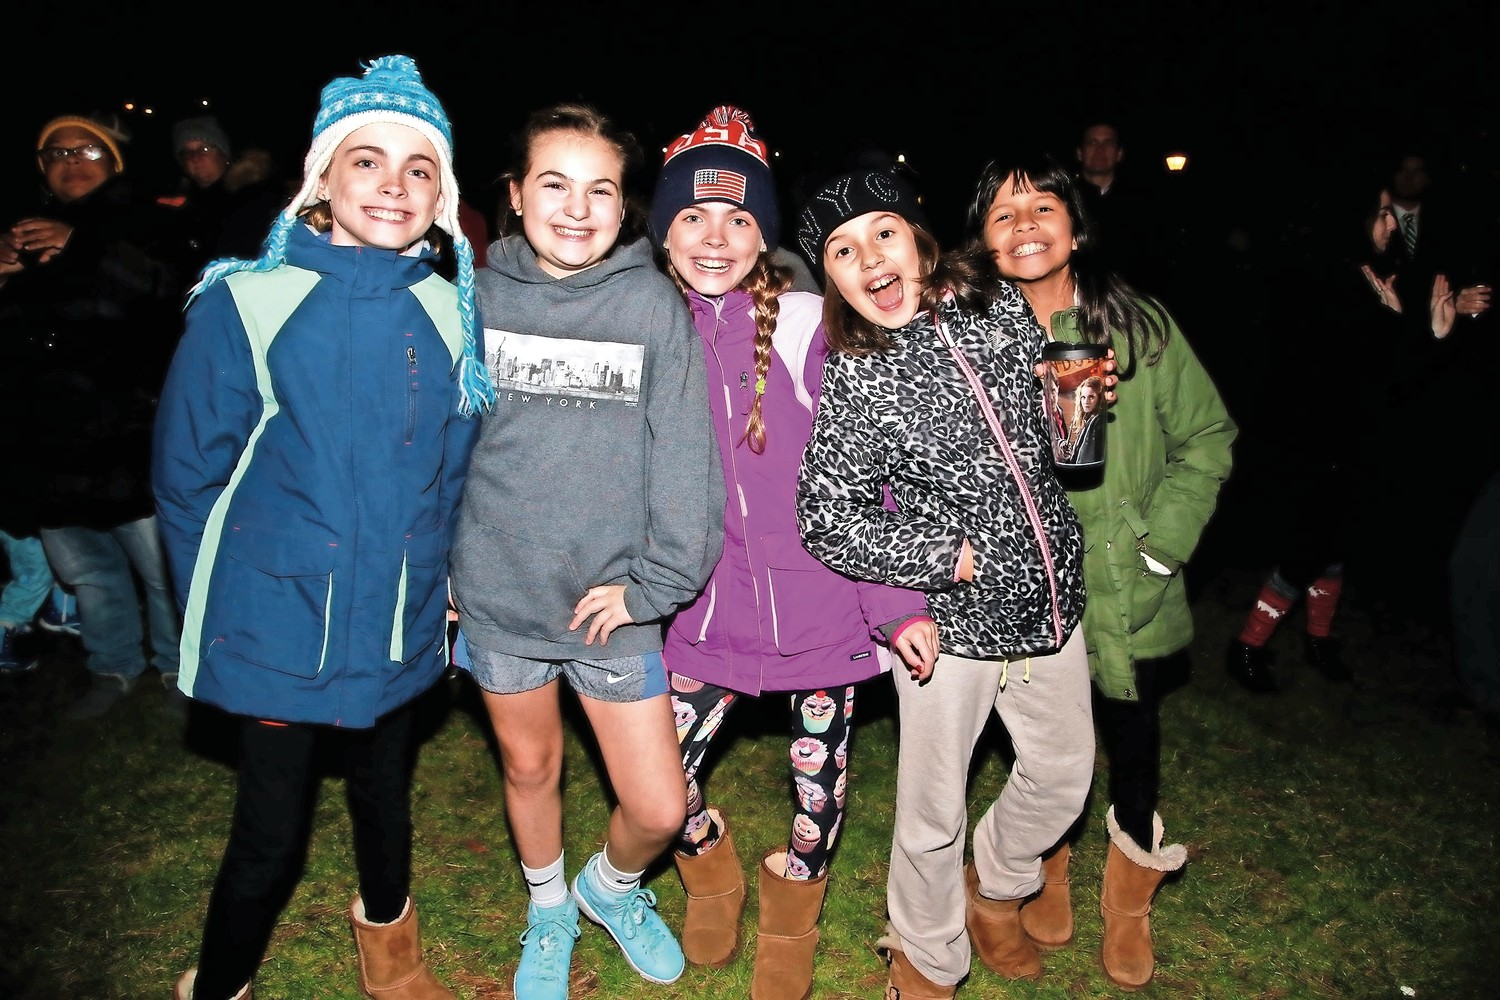 Watson School friends, Ella Faranda, Charly Testerman, Julie Faranda, Alice Hoyos and Kayla Rosales.